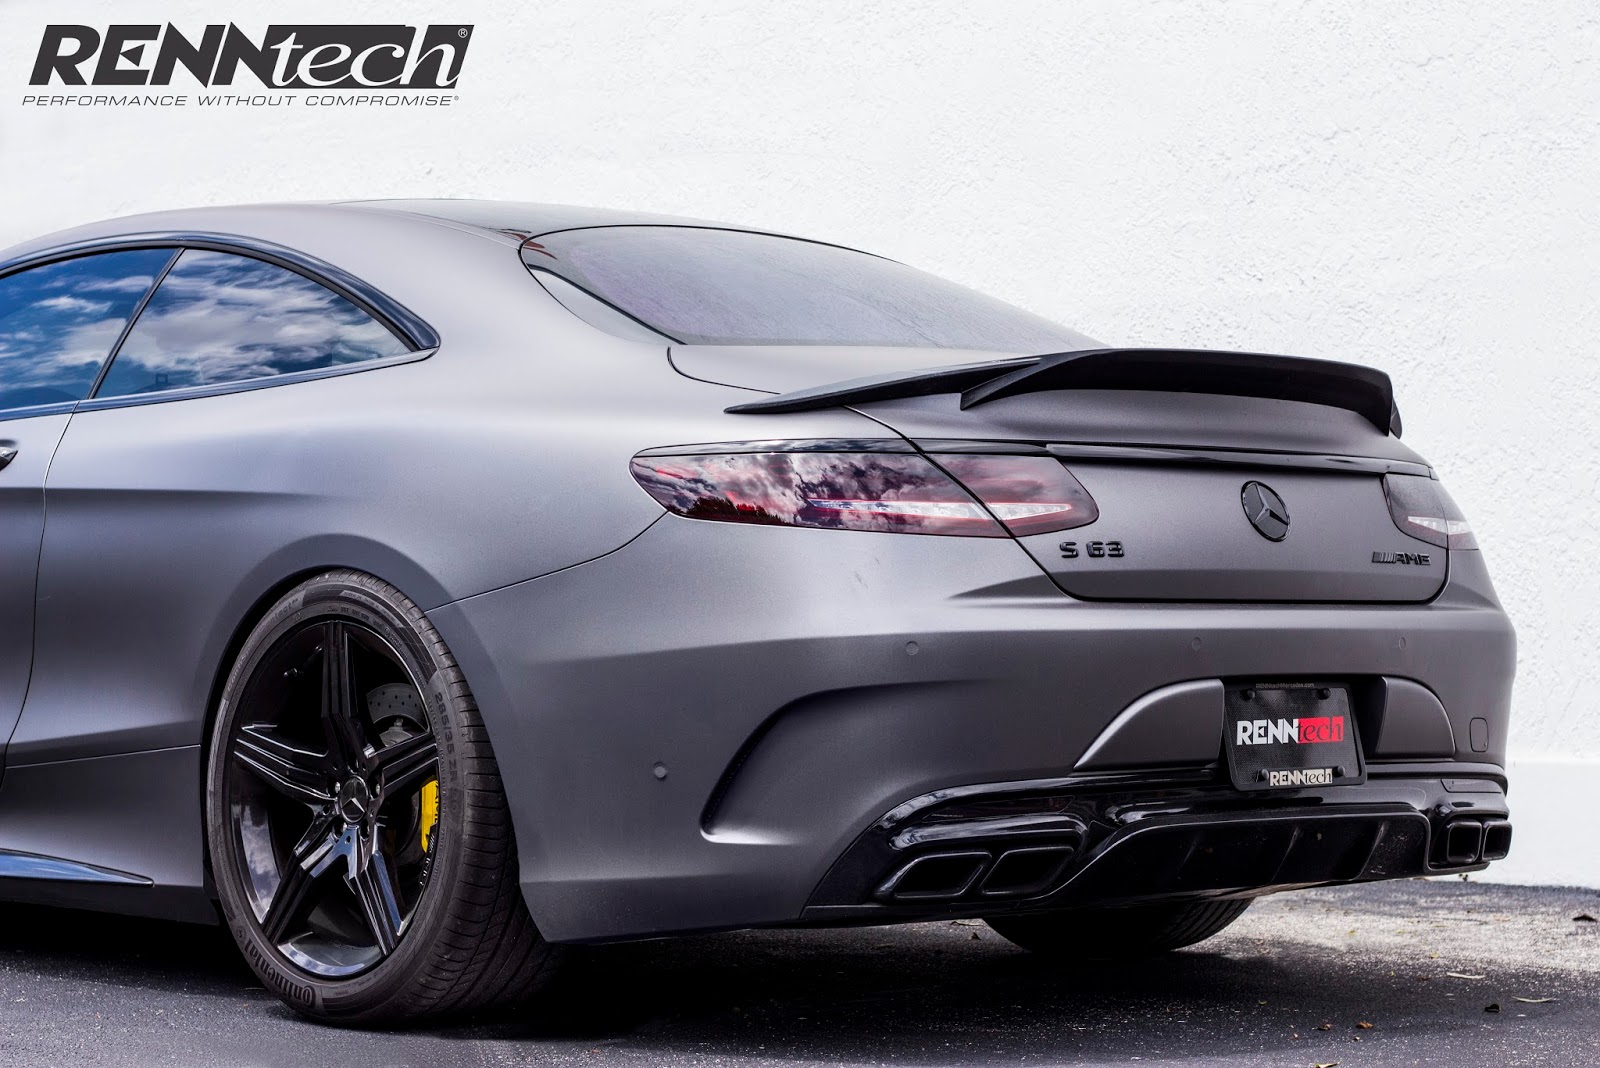 mercedes benz c217 s63 amg coupe by renntech benztuning. Black Bedroom Furniture Sets. Home Design Ideas